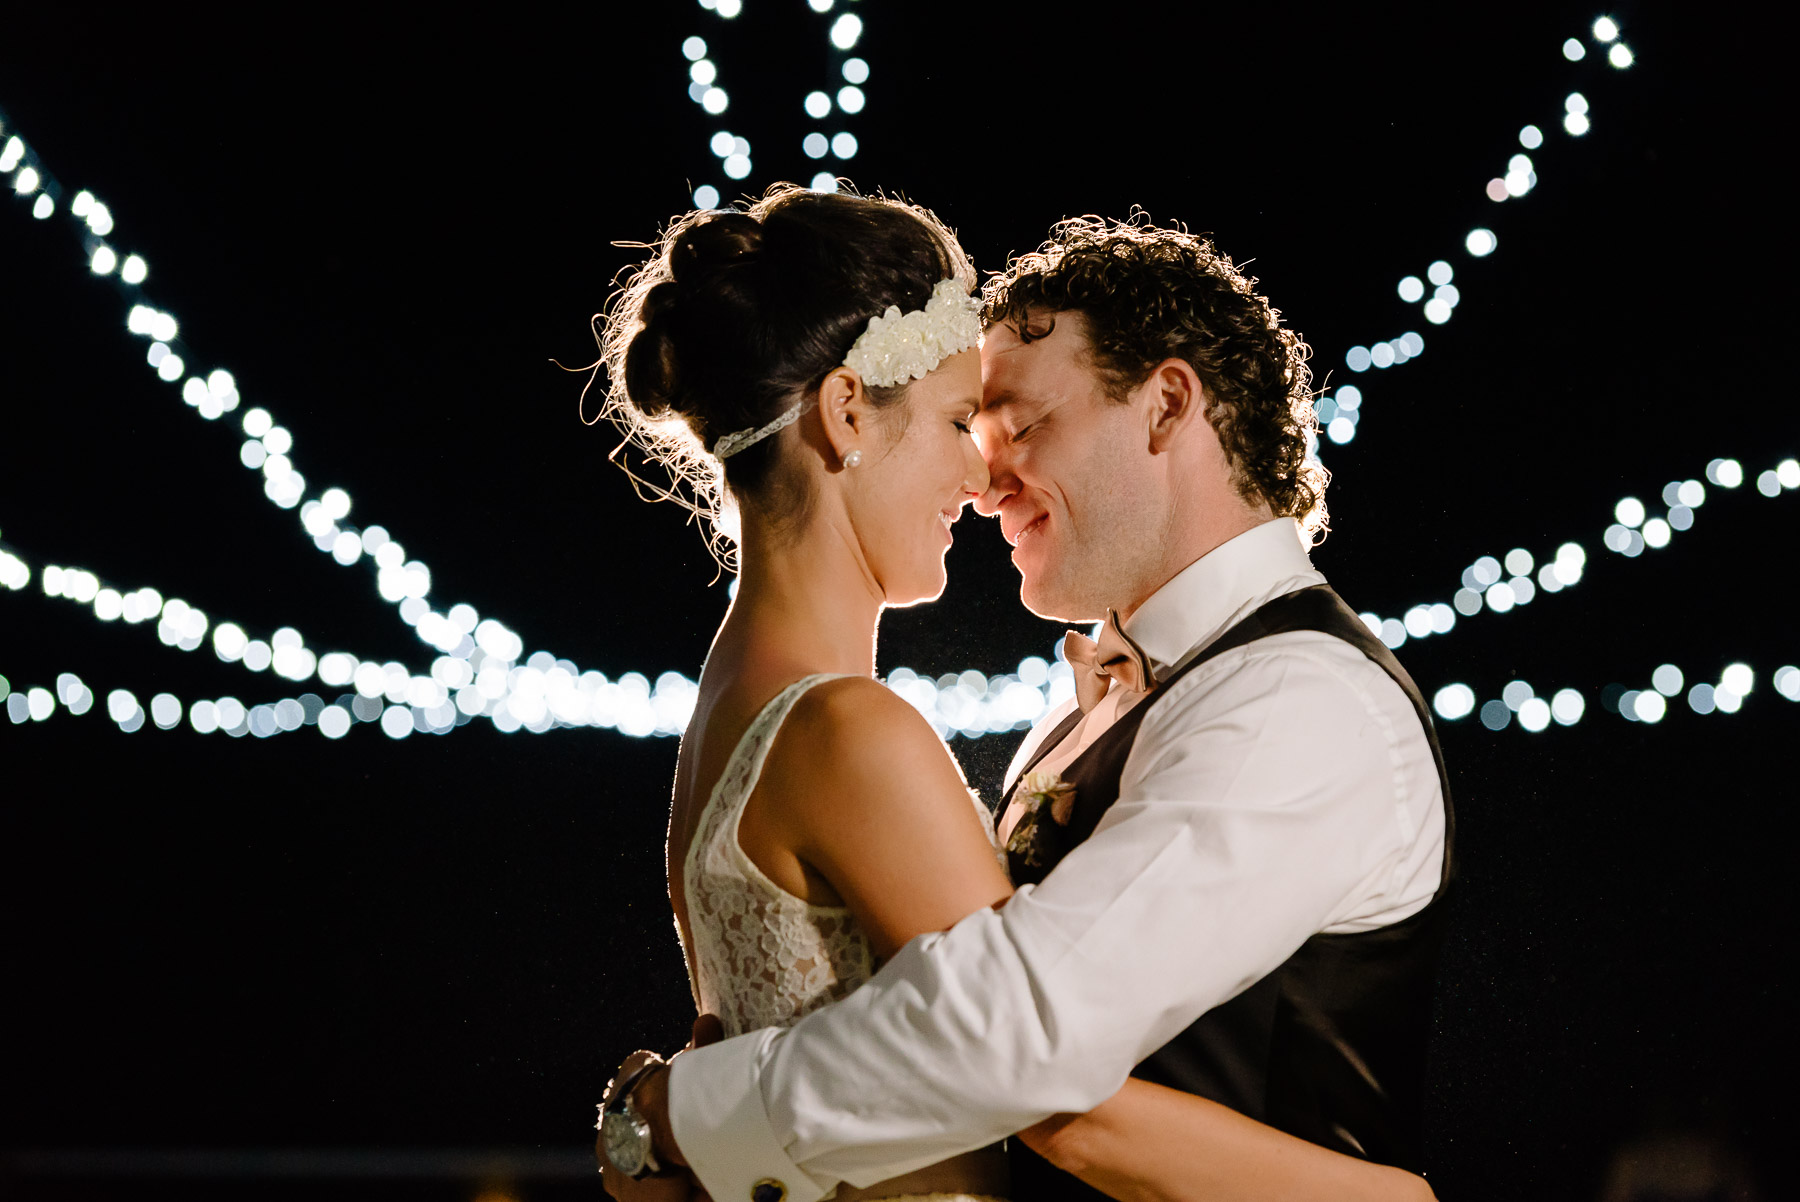 Justin_and_Jim_Best_Of_Wedding_Photography-14.jpg